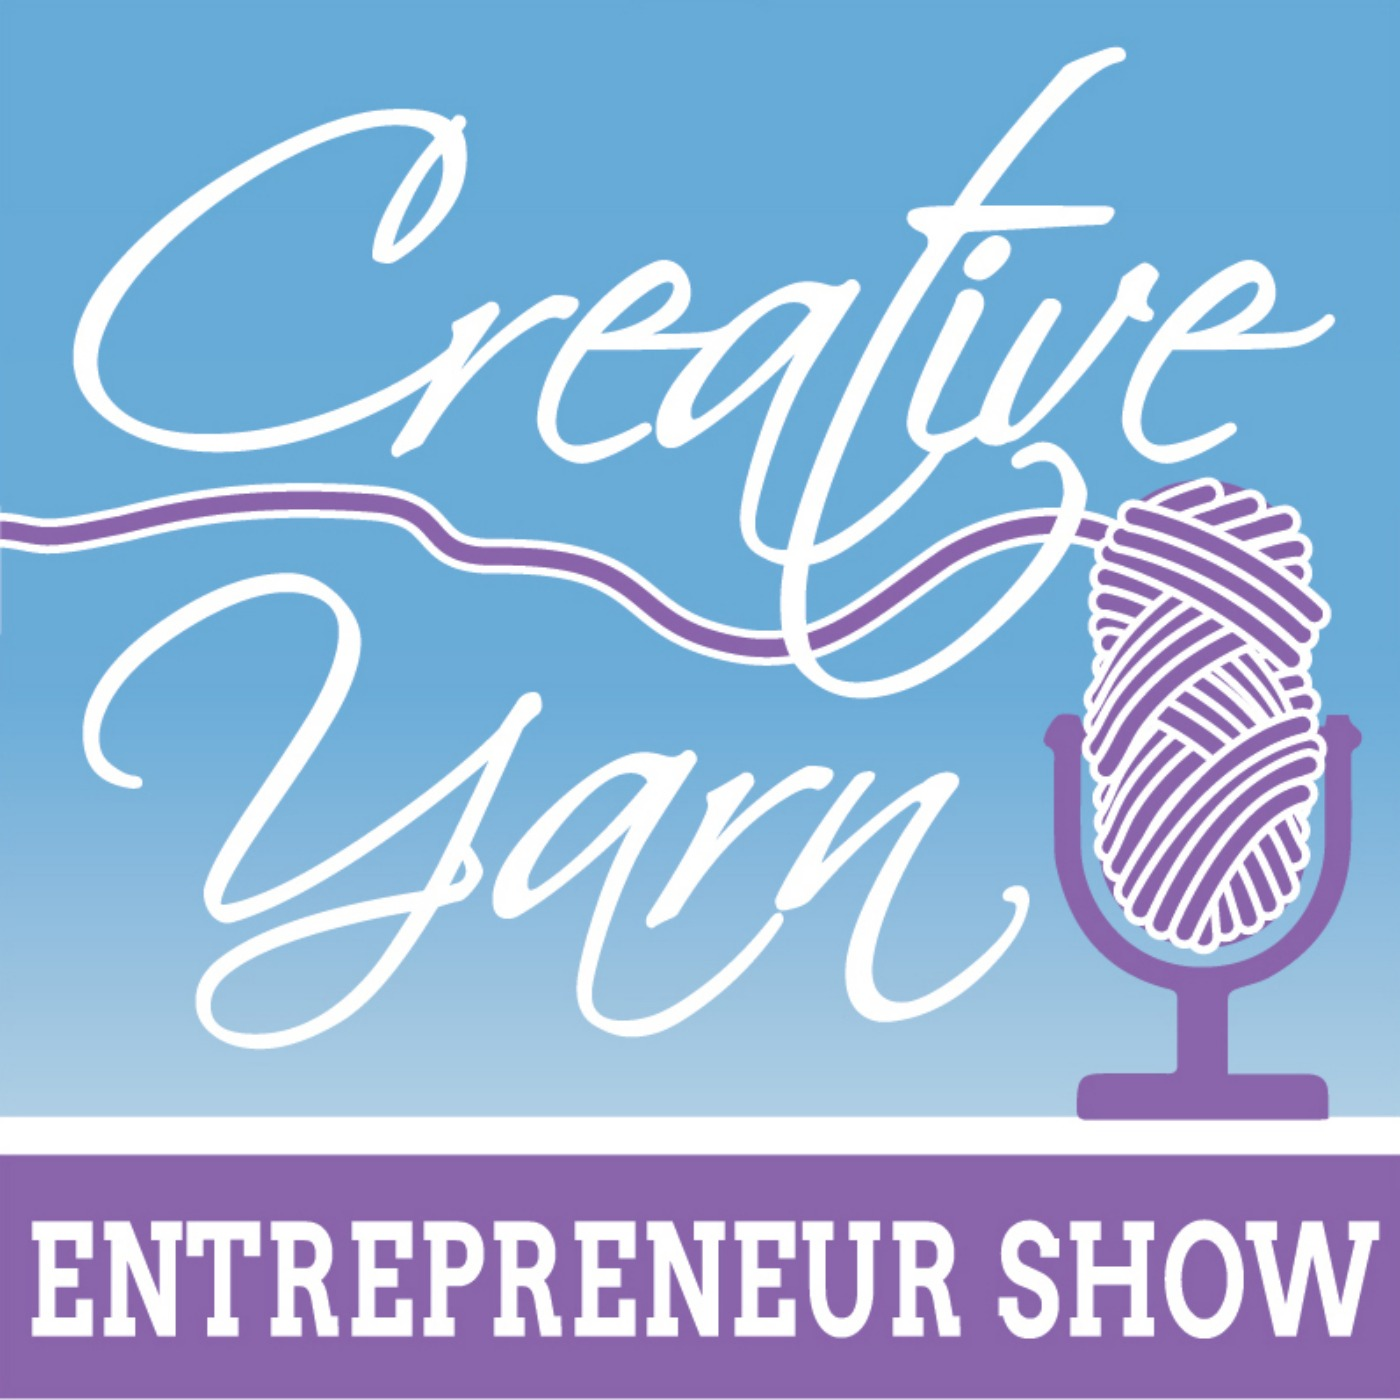 Episode 26: Eco Conscious Knitting & Niche Marketing with Lindsay Lewchuk from Knit Eco Chic - The Creative Yarn Entrepreneur Show